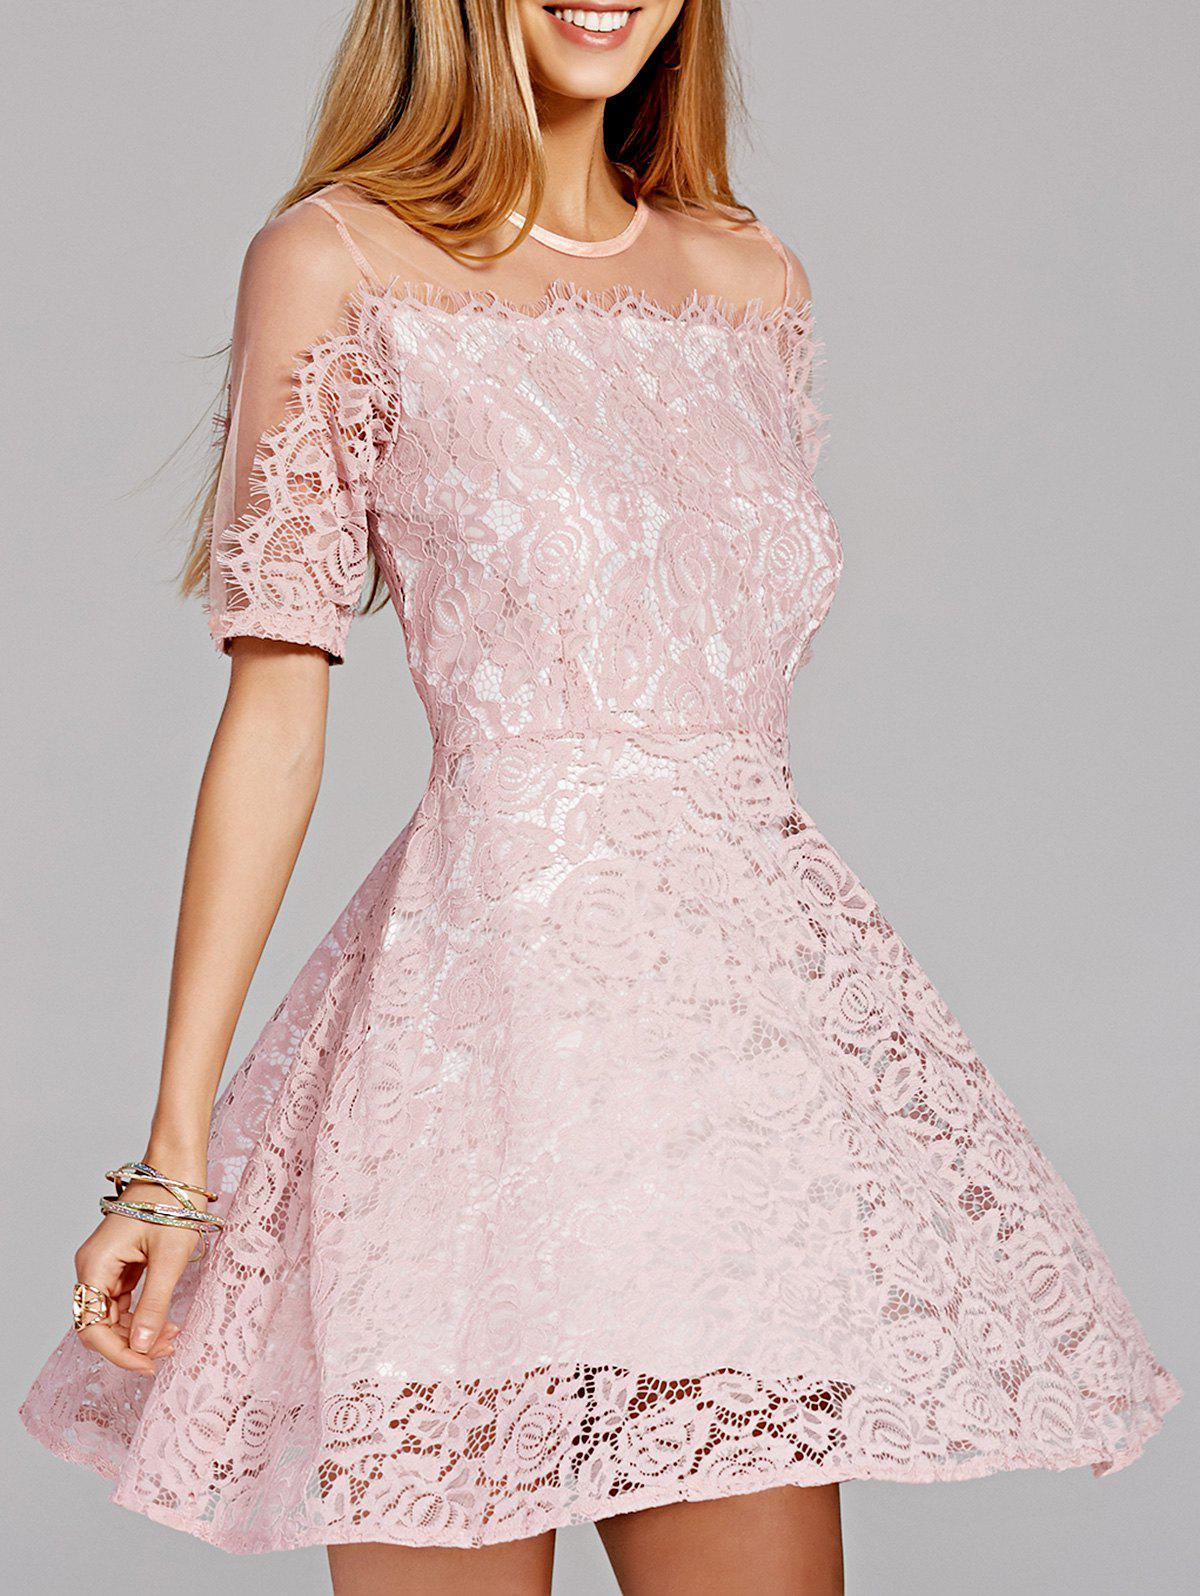 Sweet Gauze Spliced Sheer Fit and Flare Lace Dress For Women - PINK XL